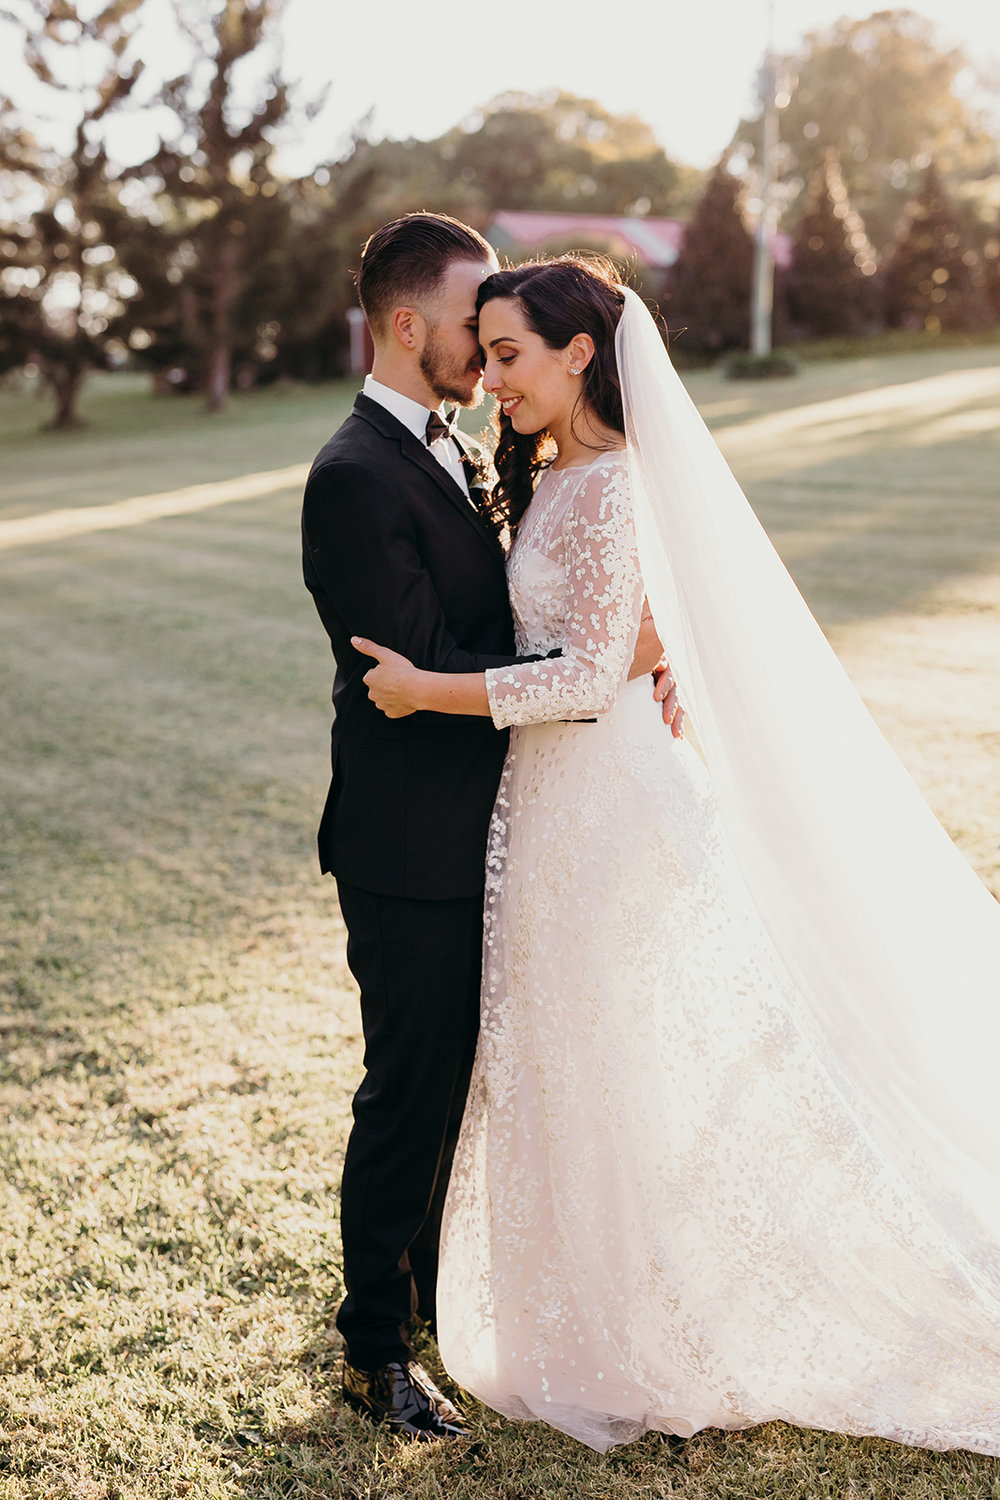 Alisha and Trent - August 2017 - What a wedding! Alisha had a customised Alisha overlay with fitted sleeves worn over an Ivory Cressida gown with detachable straps.In 2017 I had FIVE Brides with broken zips!! Luckily I was able to get to each and every one to stitch it closed before the ceremony. I have had the odd broken zip over the years but 5 in one year was not usual. Needless to say I have since found a new zip supplier with zero broken zips in 2018! Thank heavens I was a guest at Alisha and Trent's big day.Images by Tennille Fink